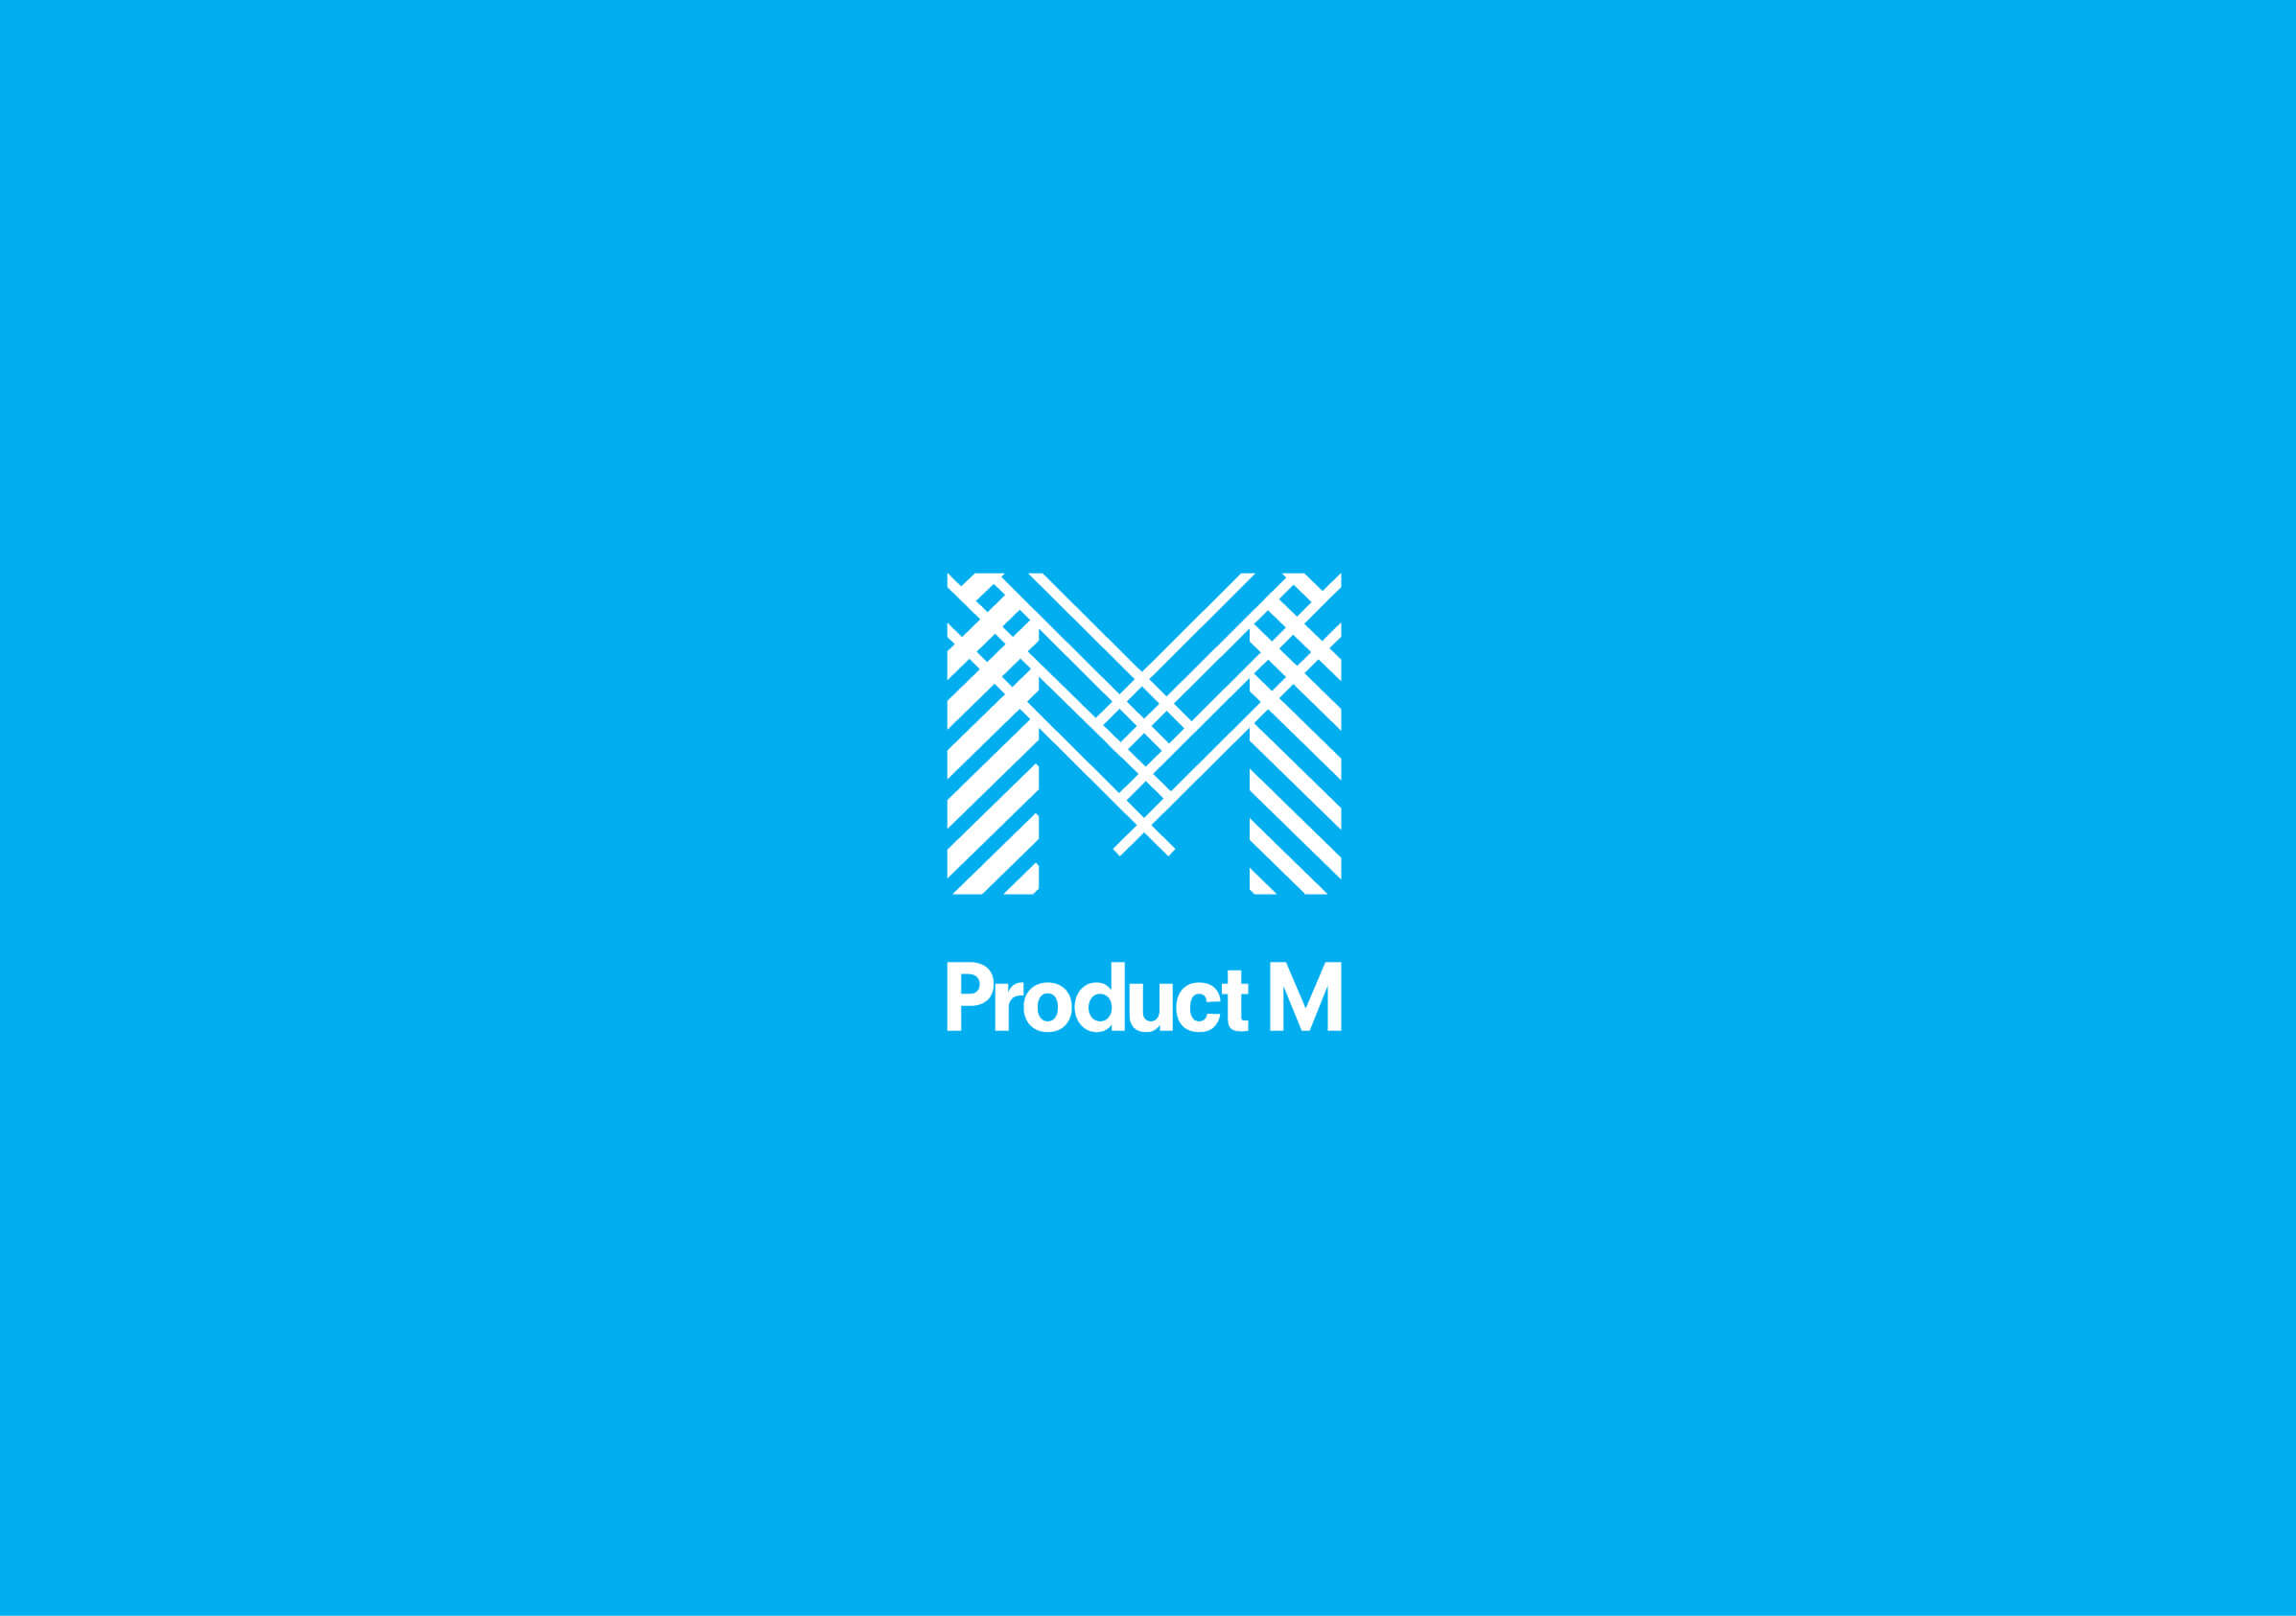 Product M logo for New York-based product marketing company by Ottawa graphic designer idApostle